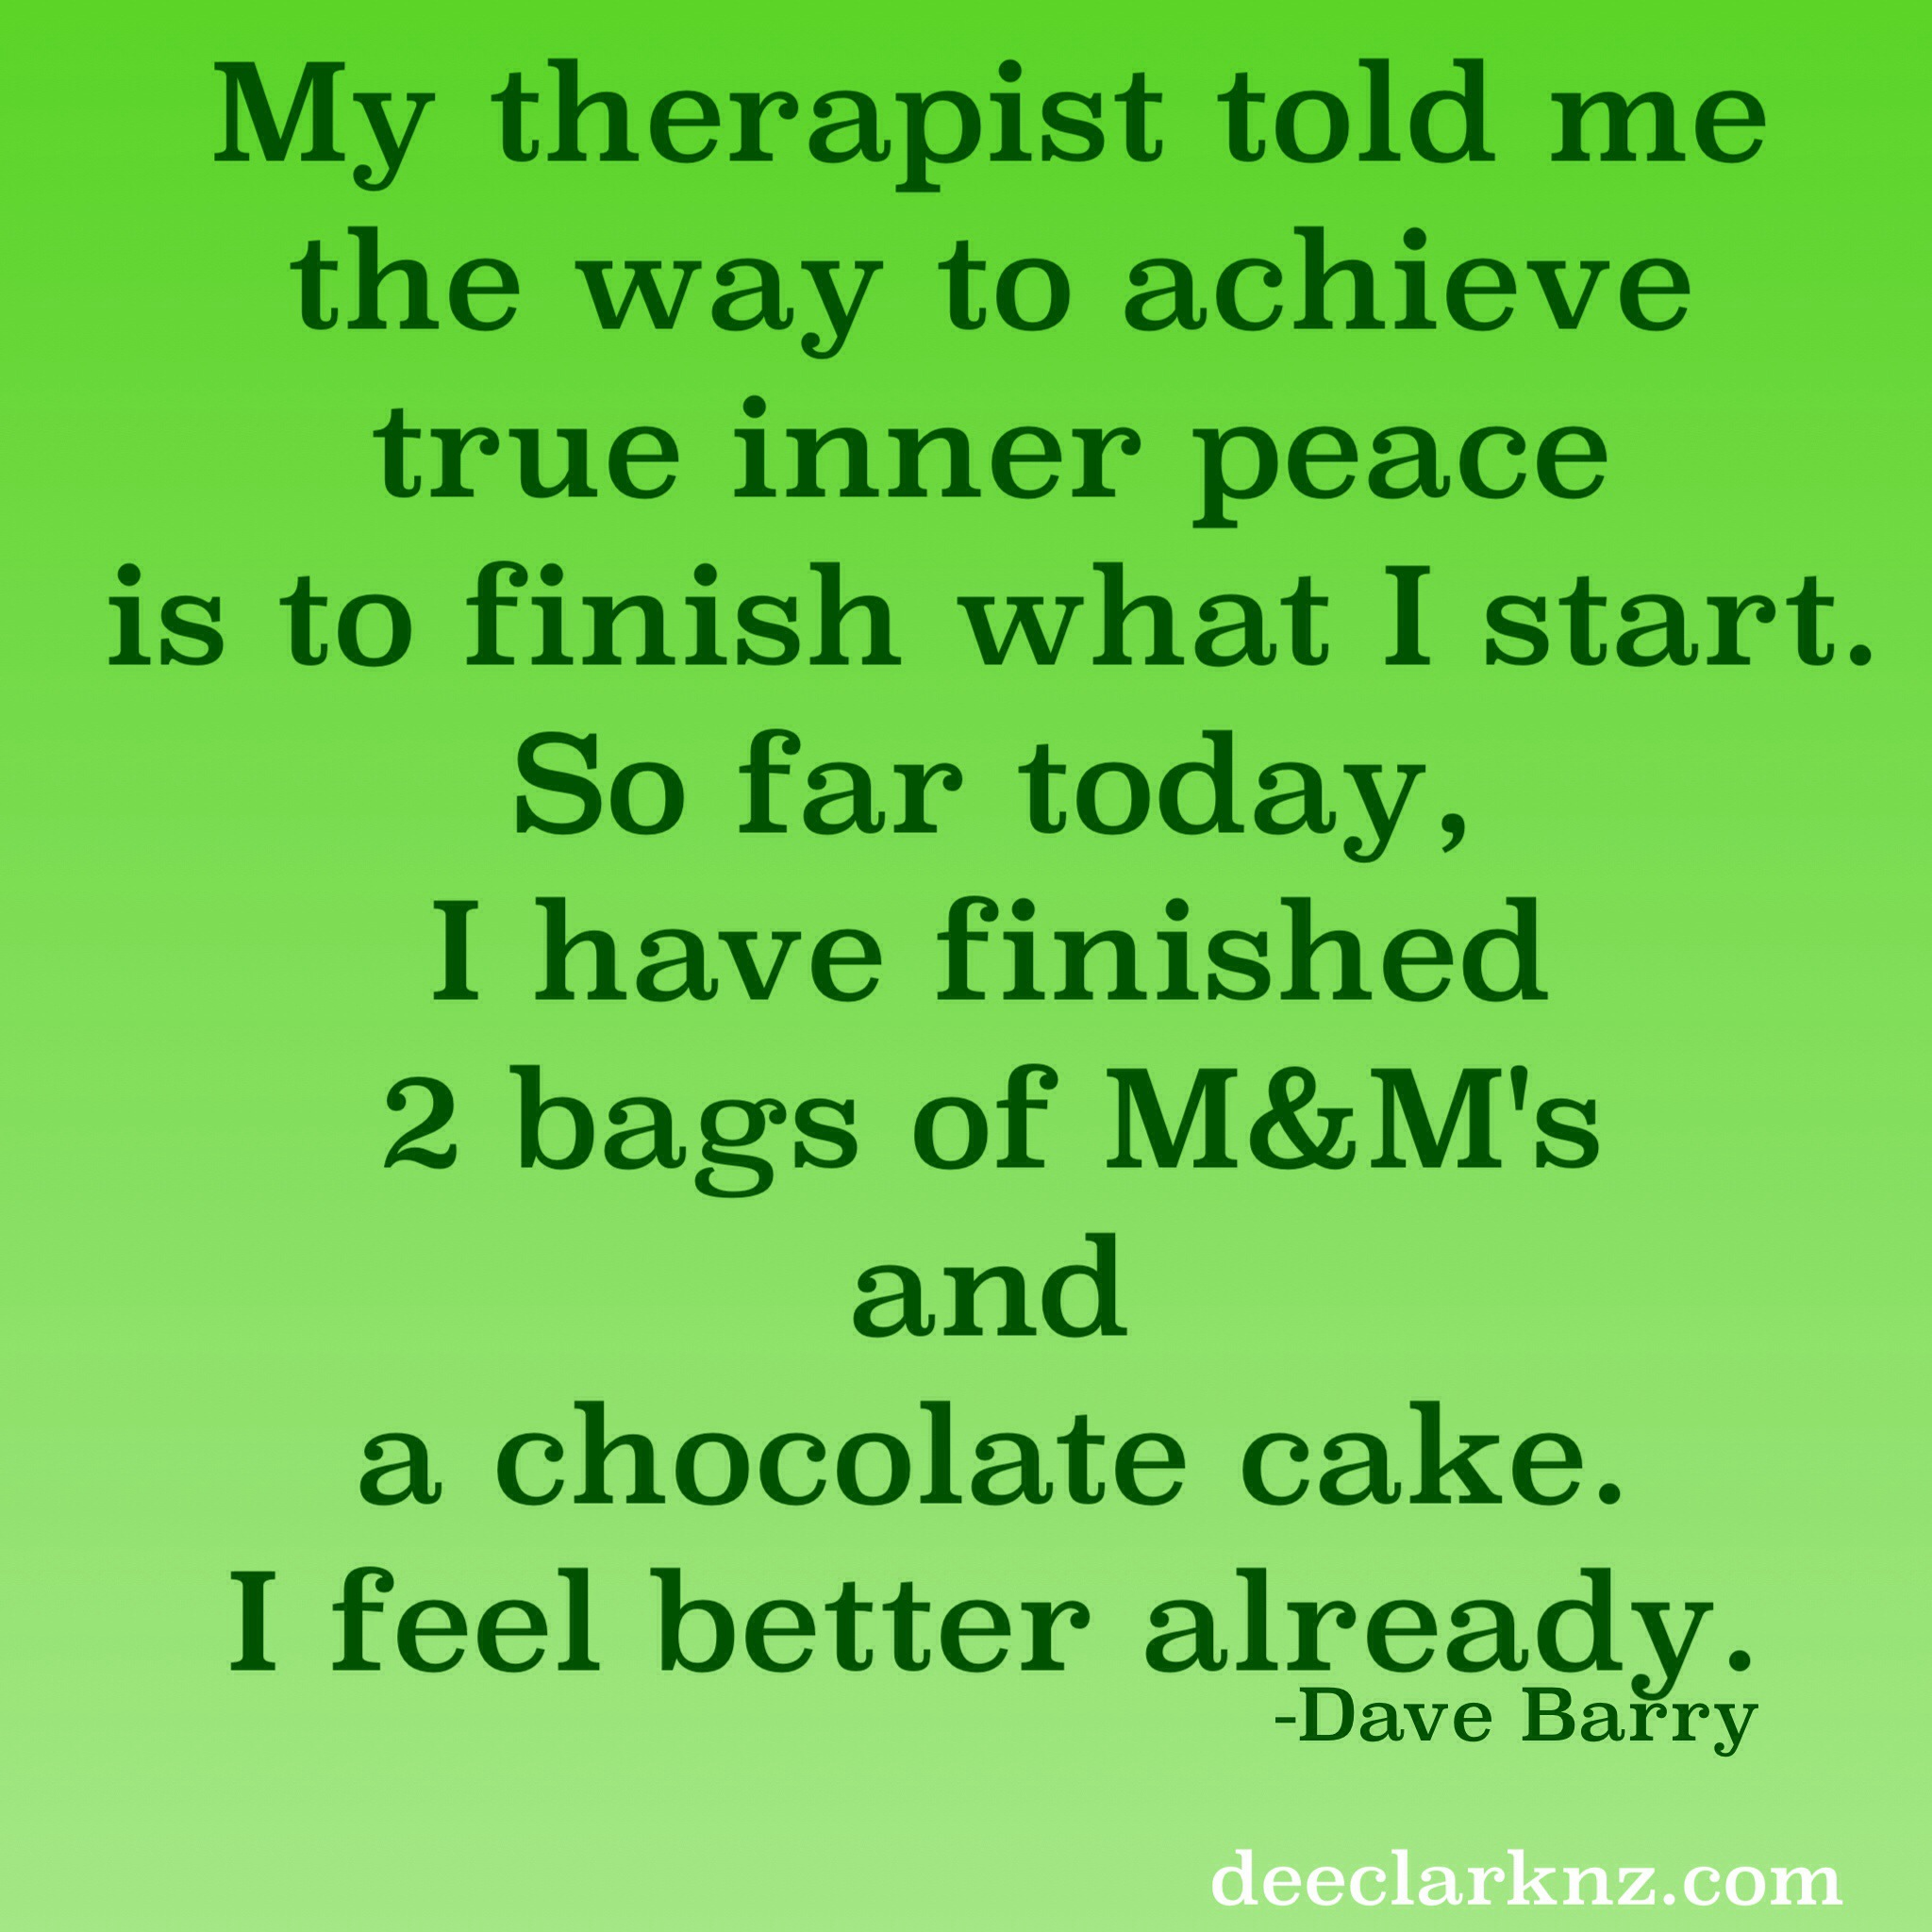 the best way to achieve true inner peace (humor)